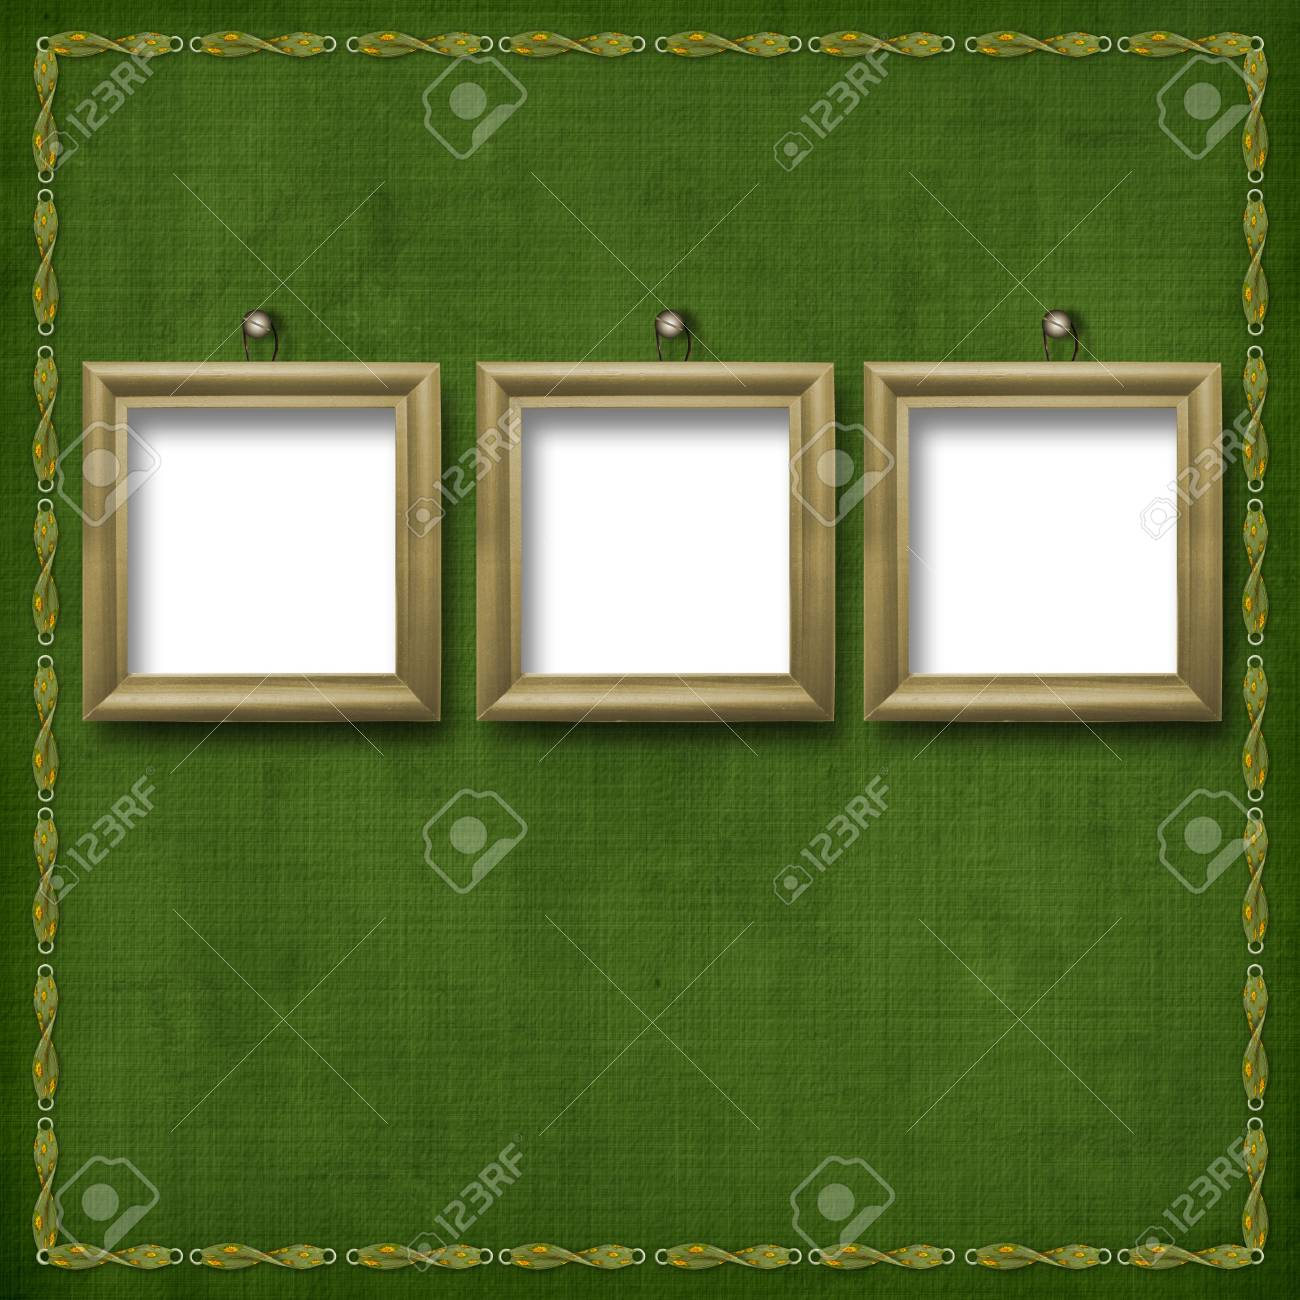 Three wooden frameworks for portraiture on the abstract background Stock Photo - 5177624